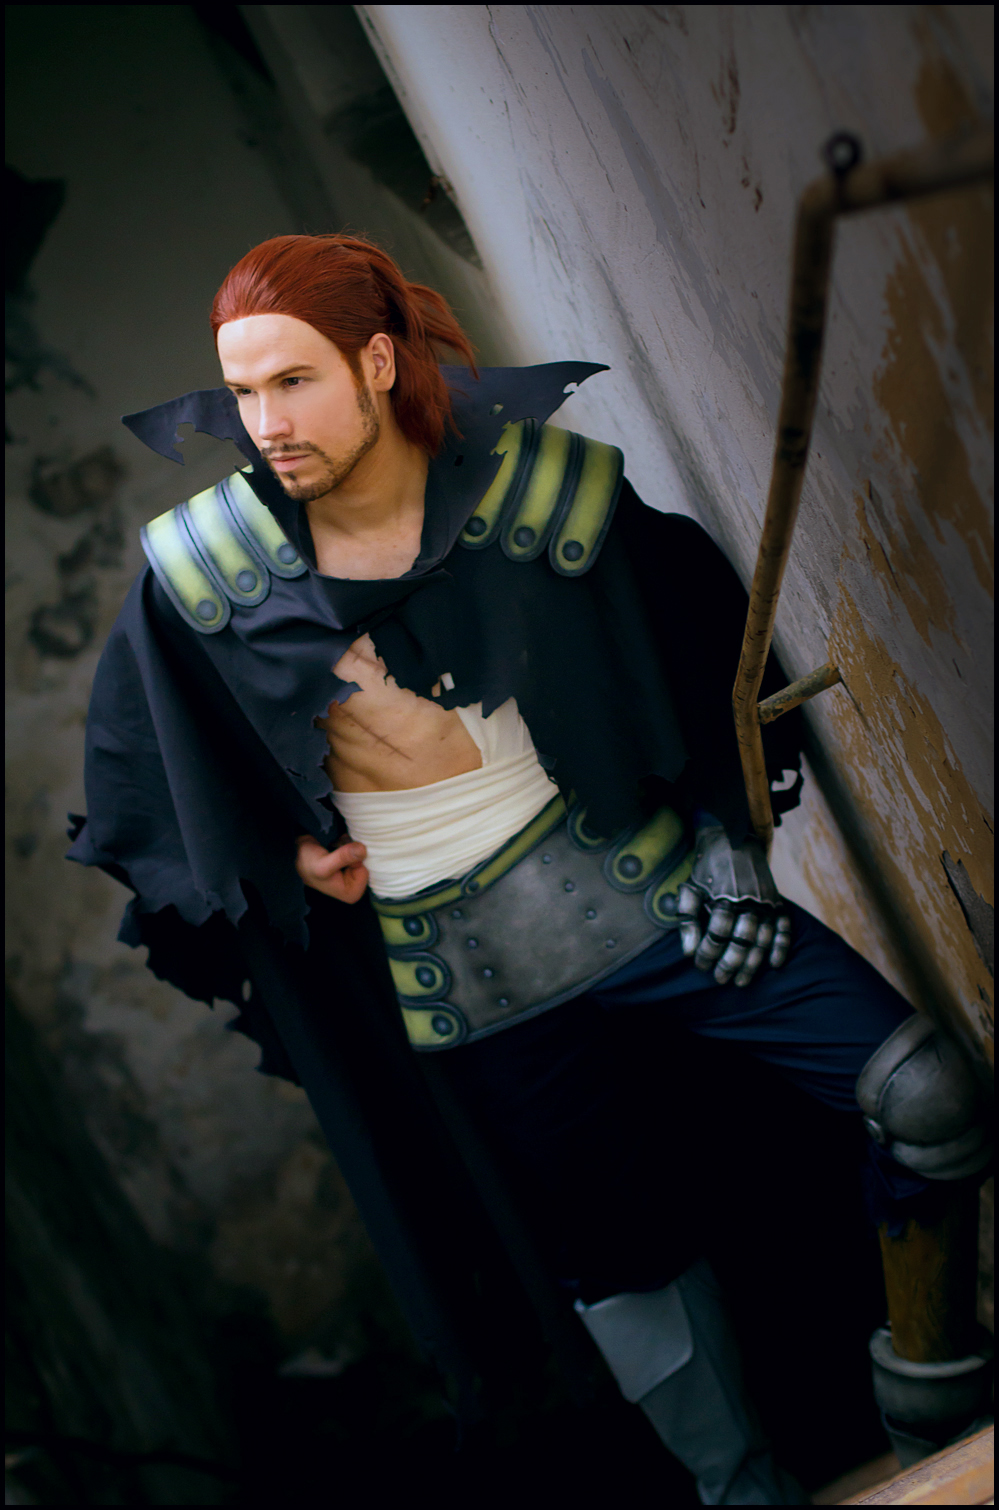 Gildarts Clive Cosplay Fairy Tail by elffi | Daily Anime Art